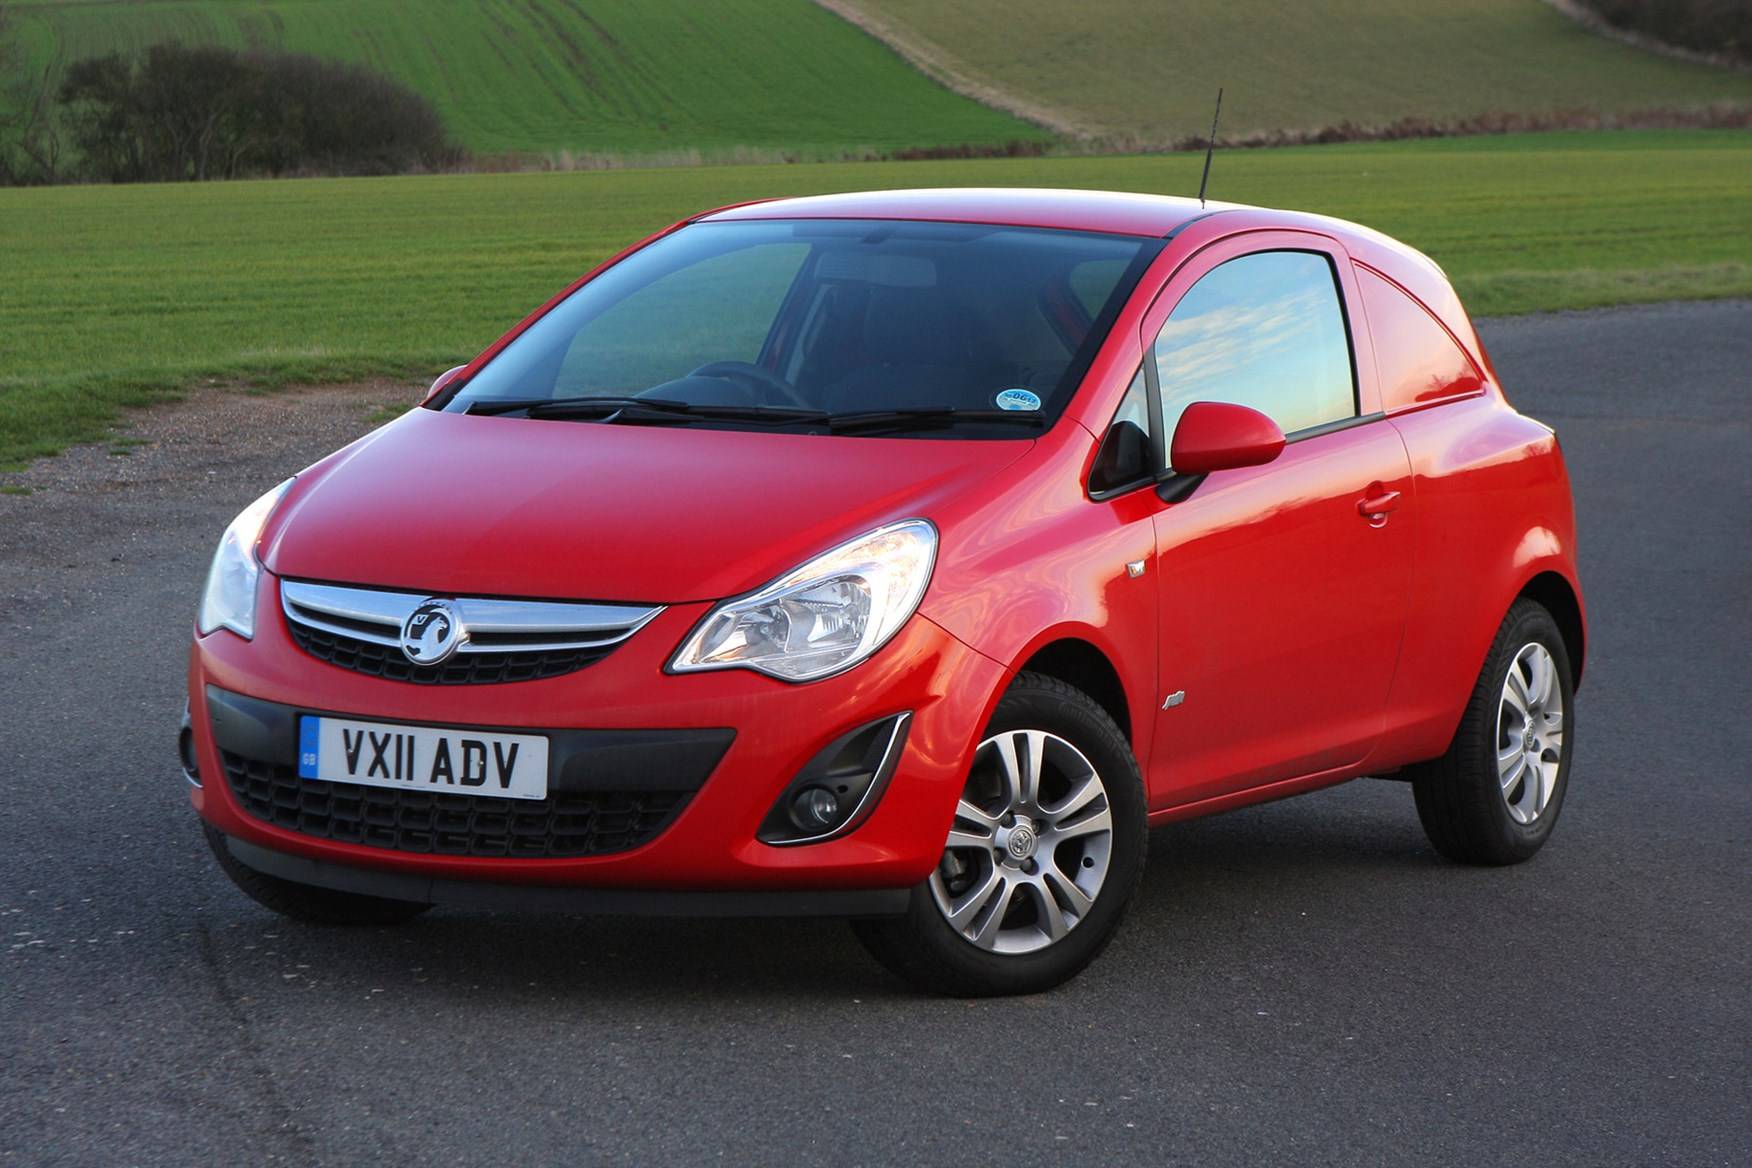 Vauxhall Corsa review on Parkers Vans - front exterior